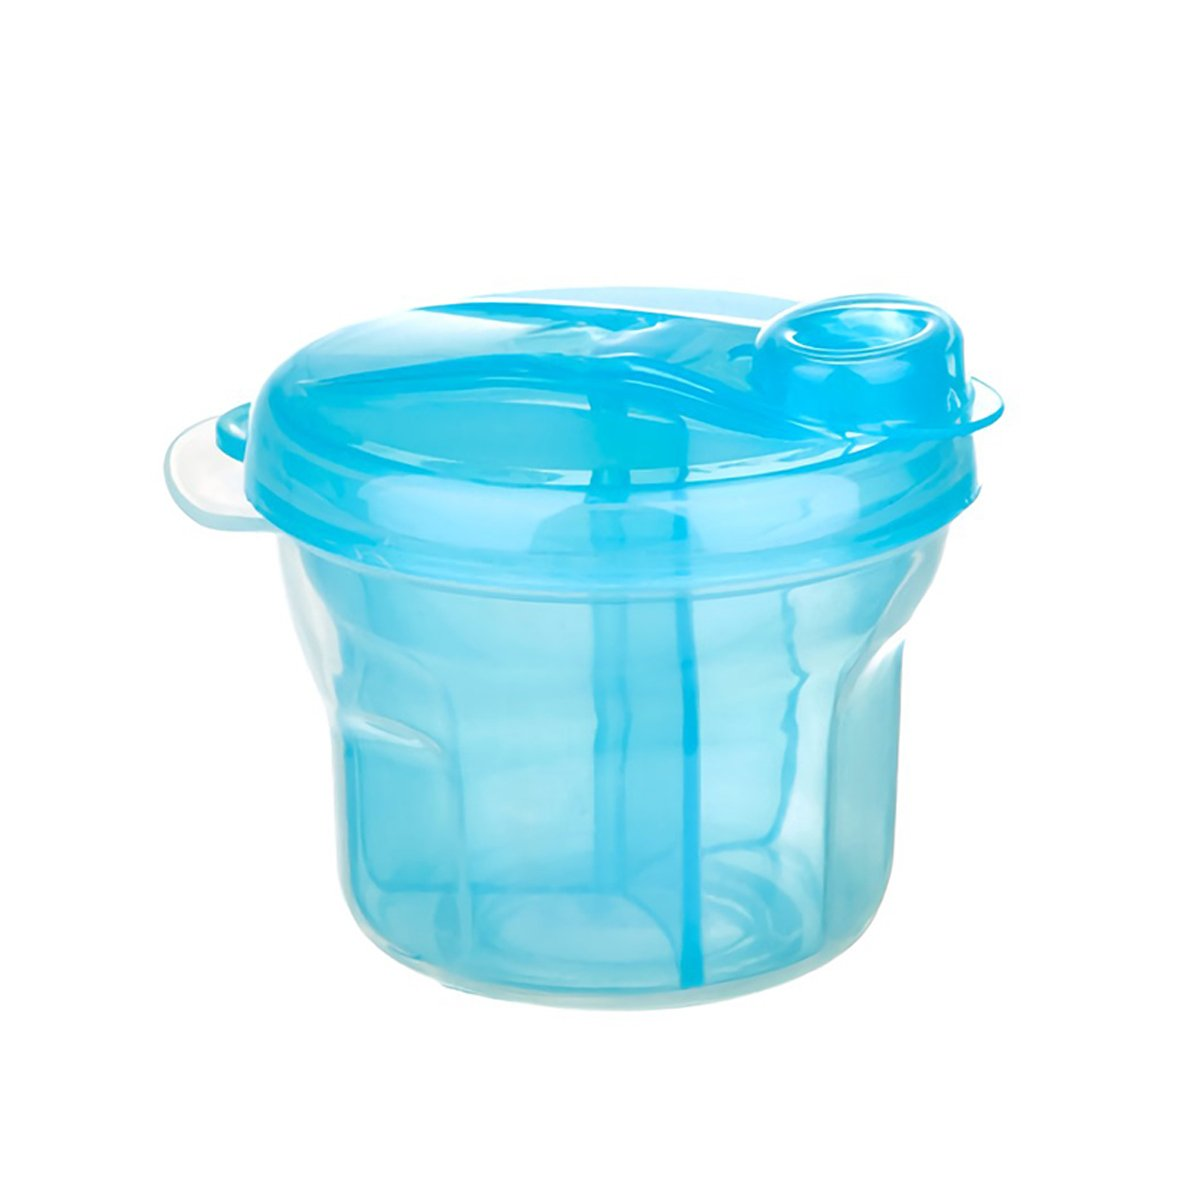 Powdered Formula Dispenser Portable Travel Container Bottle Storage Ouchver